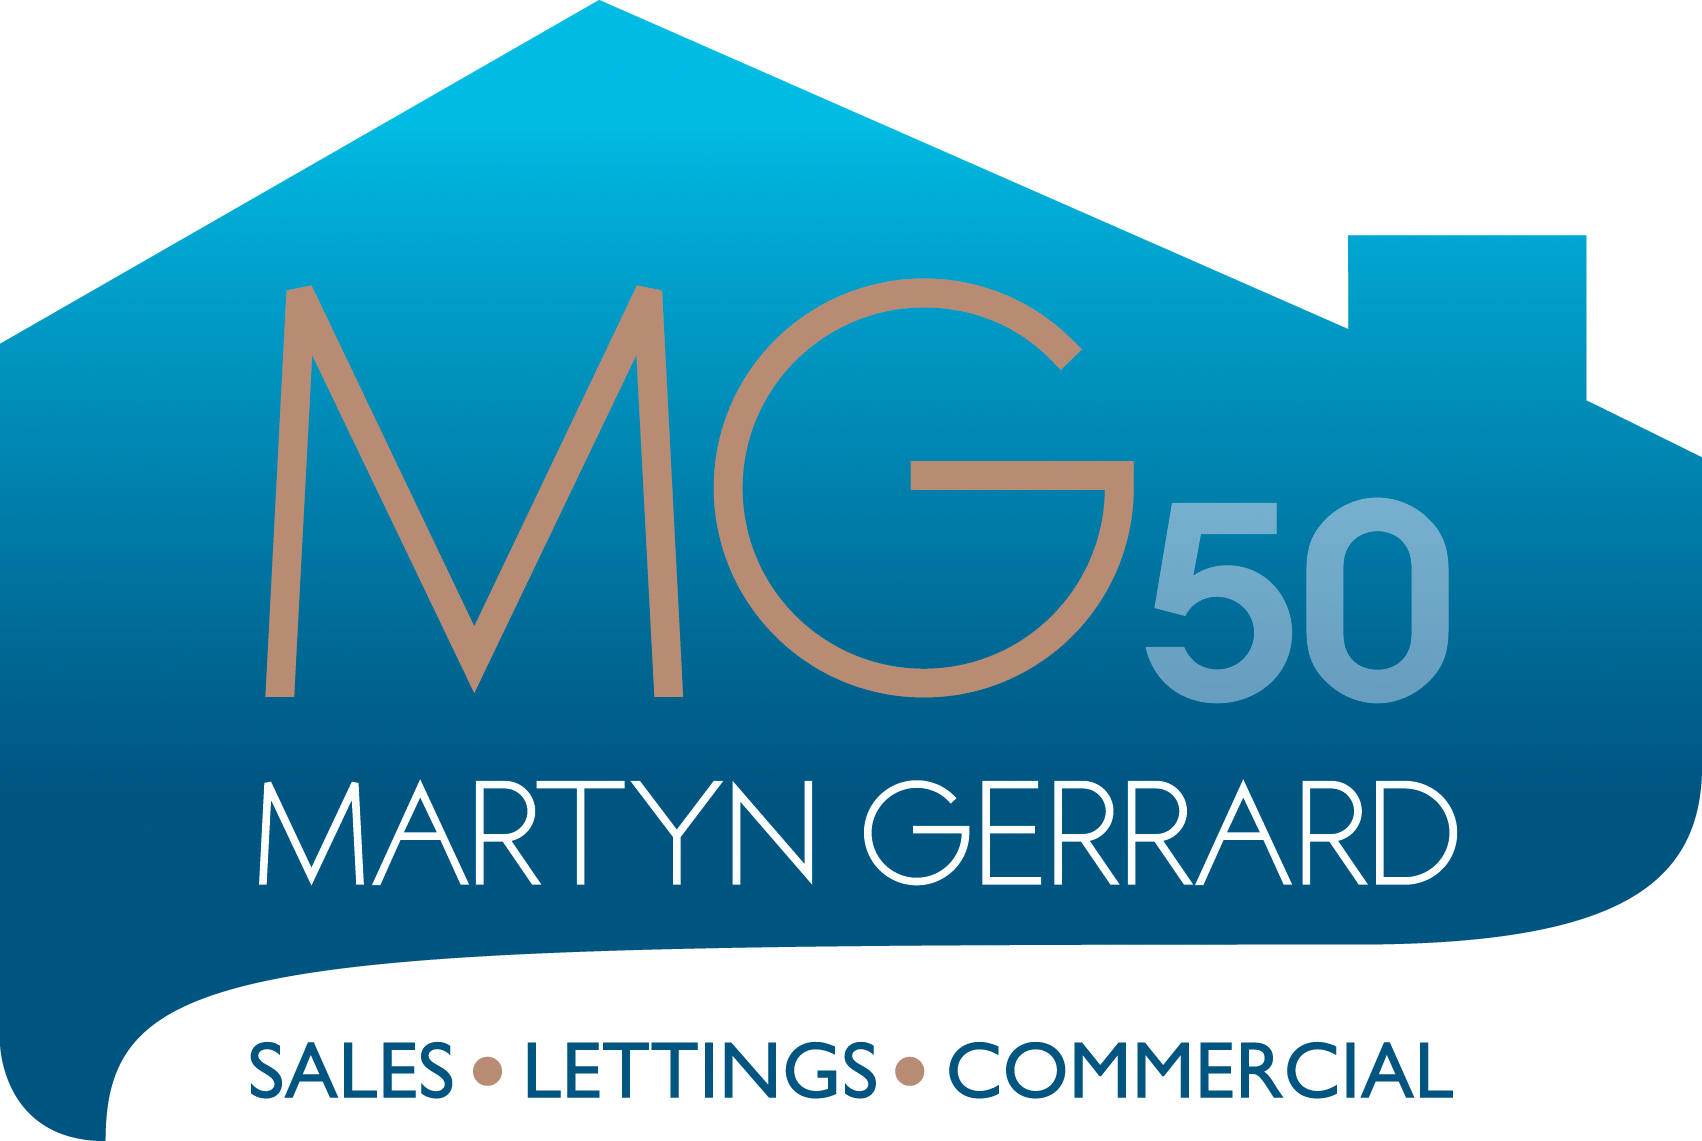 Martyn Gerrard Estate Agents